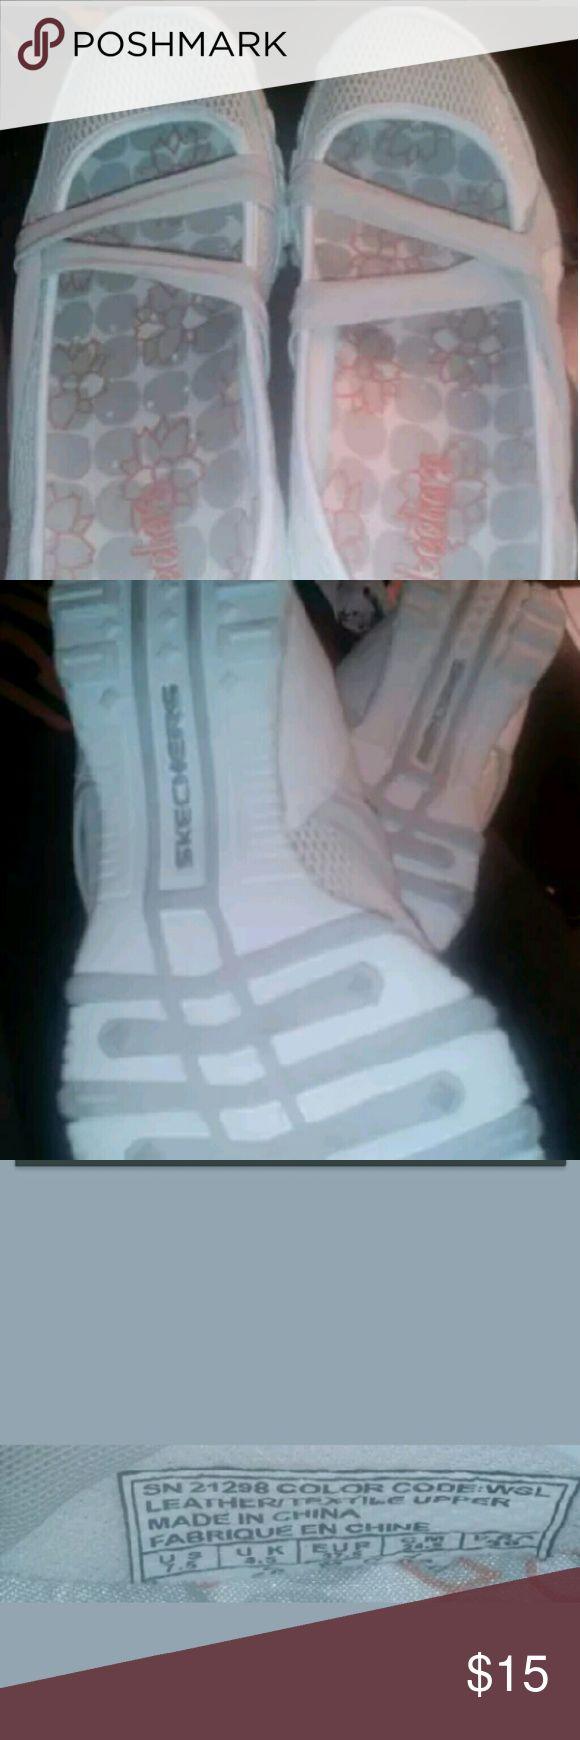 White Skechers Size 7.5 Excellent condition Very clean no signs of wear Skechers Shoes Flats & Loafers